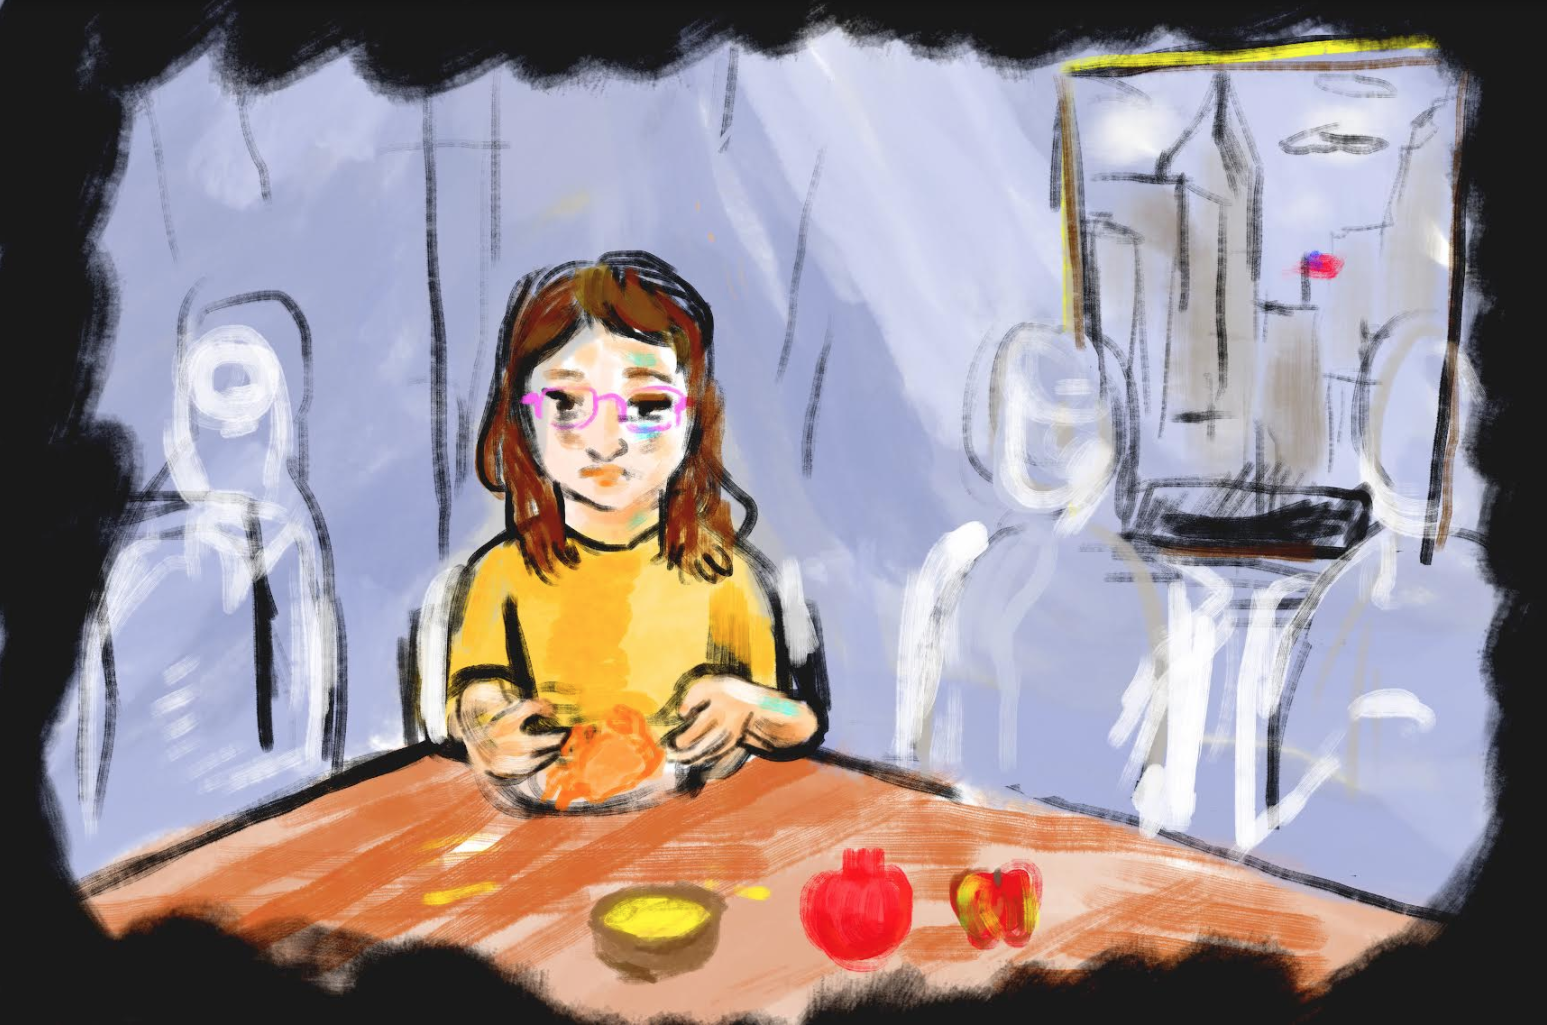 For one Israeli living in New York, there's nothing like celebrating Rosh Hashanah with family back at home. (Illustration/JTA-Lior Zaltzman)